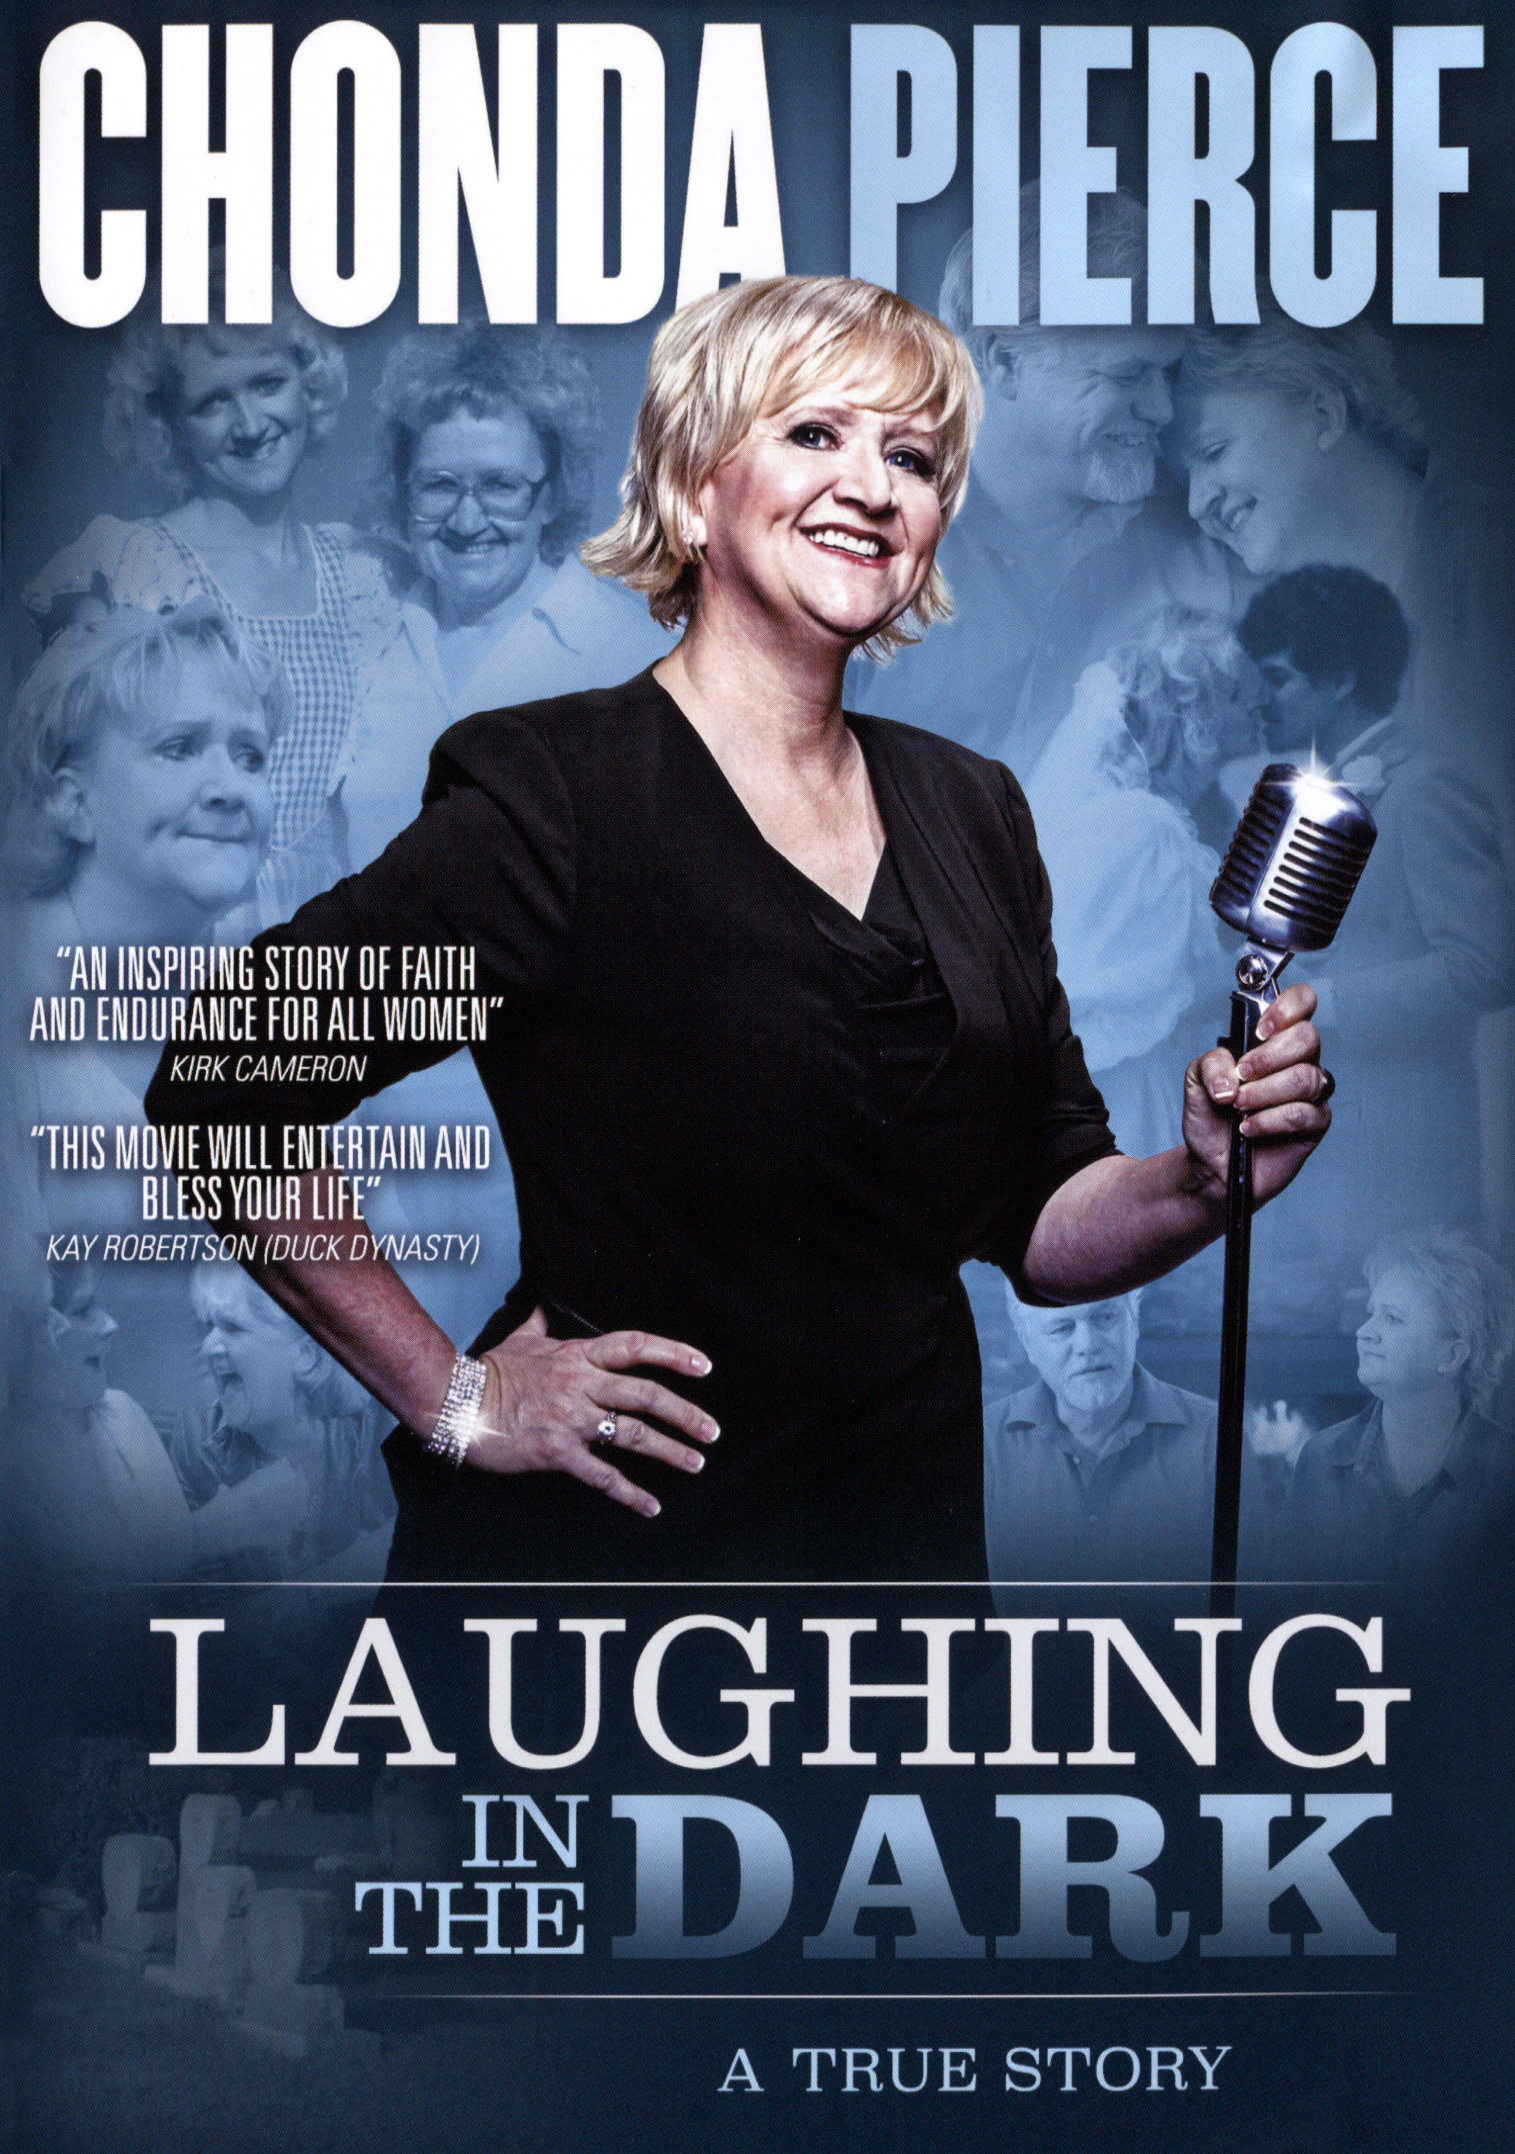 Chonda Pierce: Laughing in the Dark